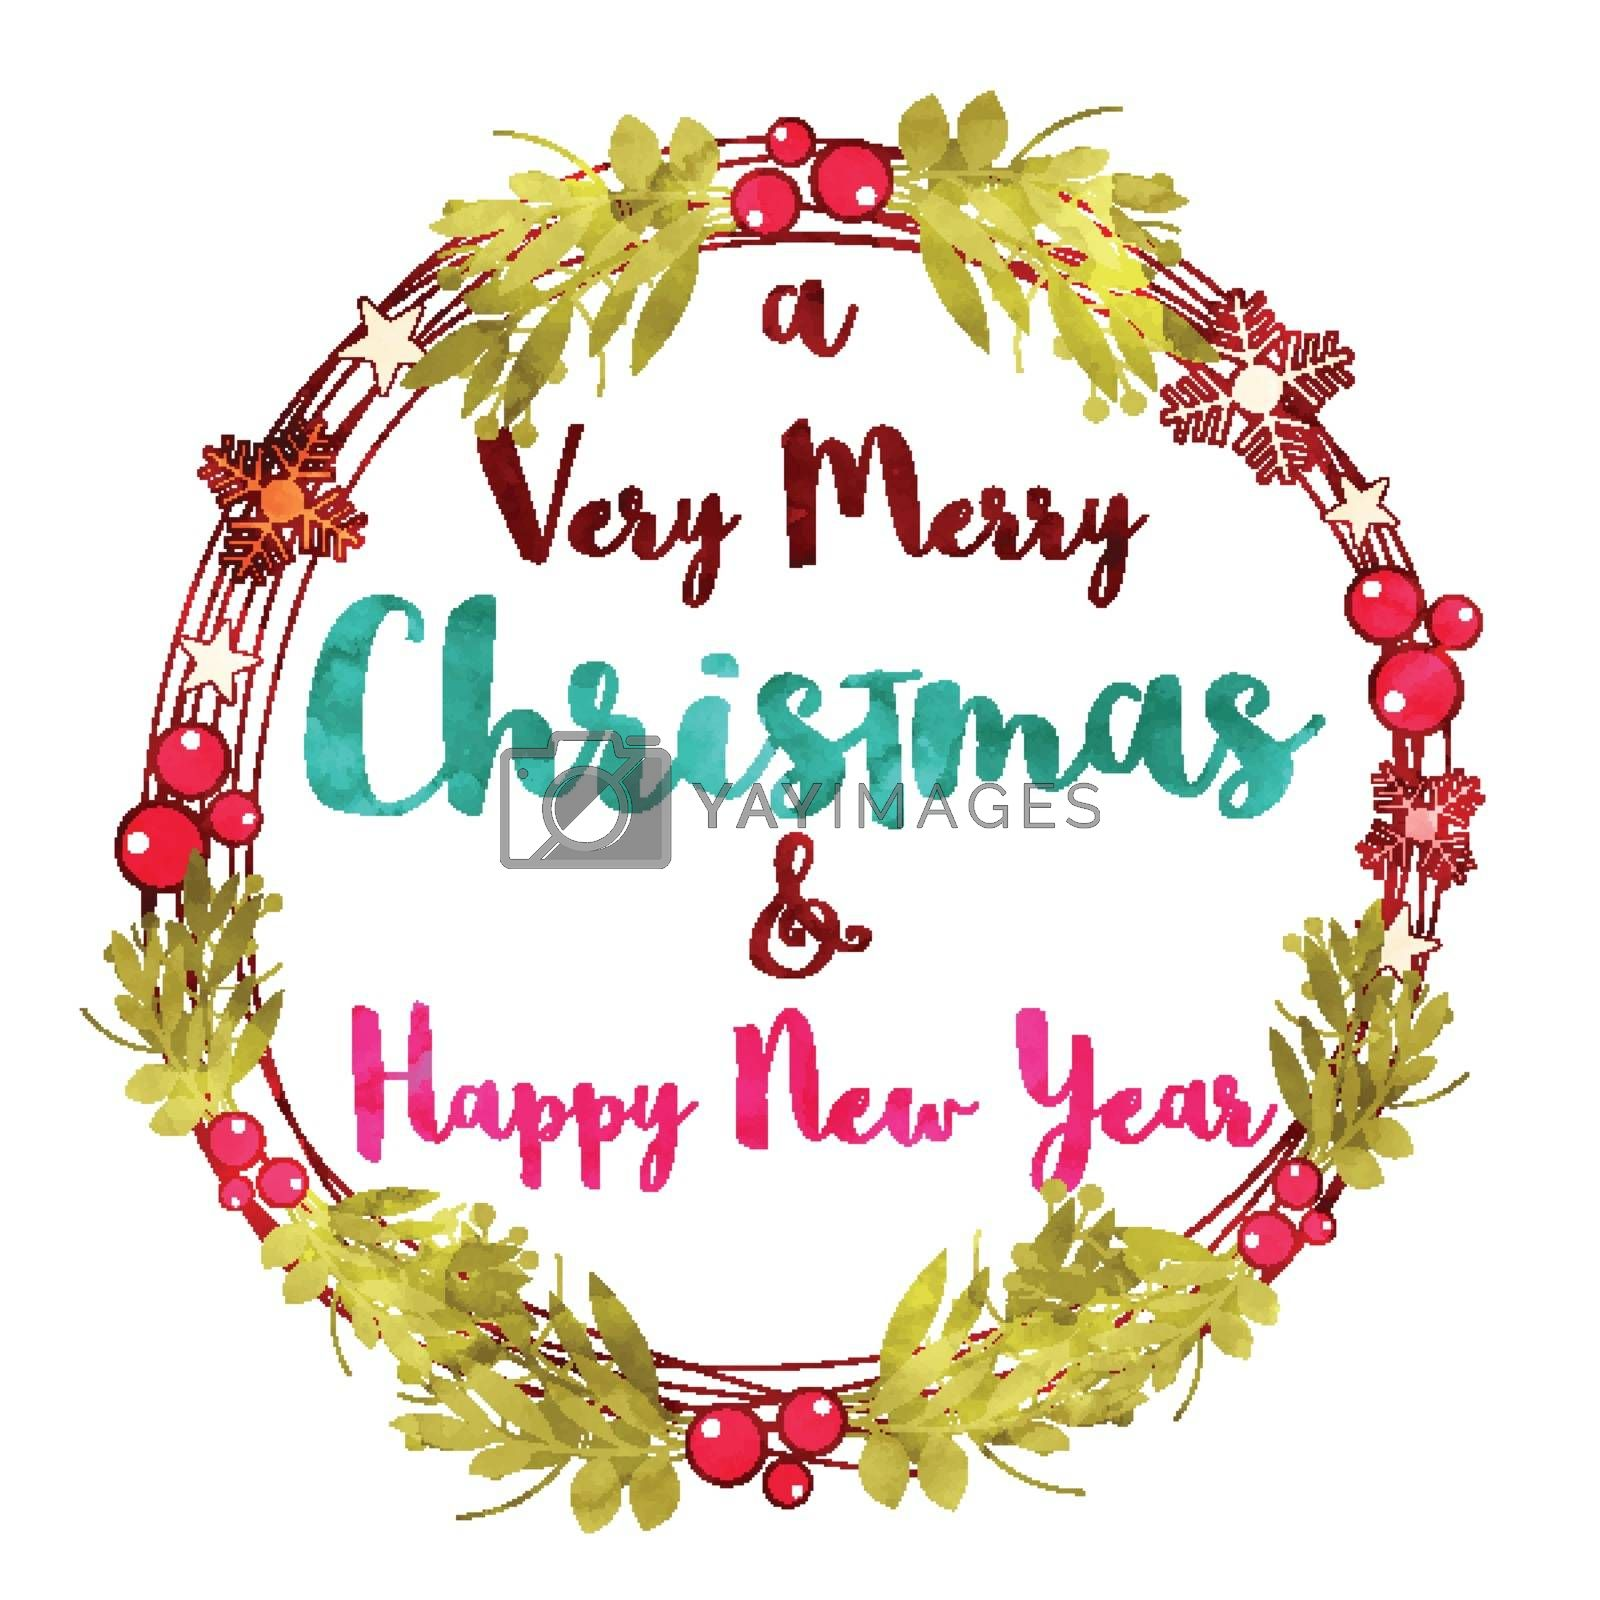 Very Merry Christmas and Happy New Year celebration Greeting Card design, Decorated with Holly Leaves, Berries and Snowflakes.